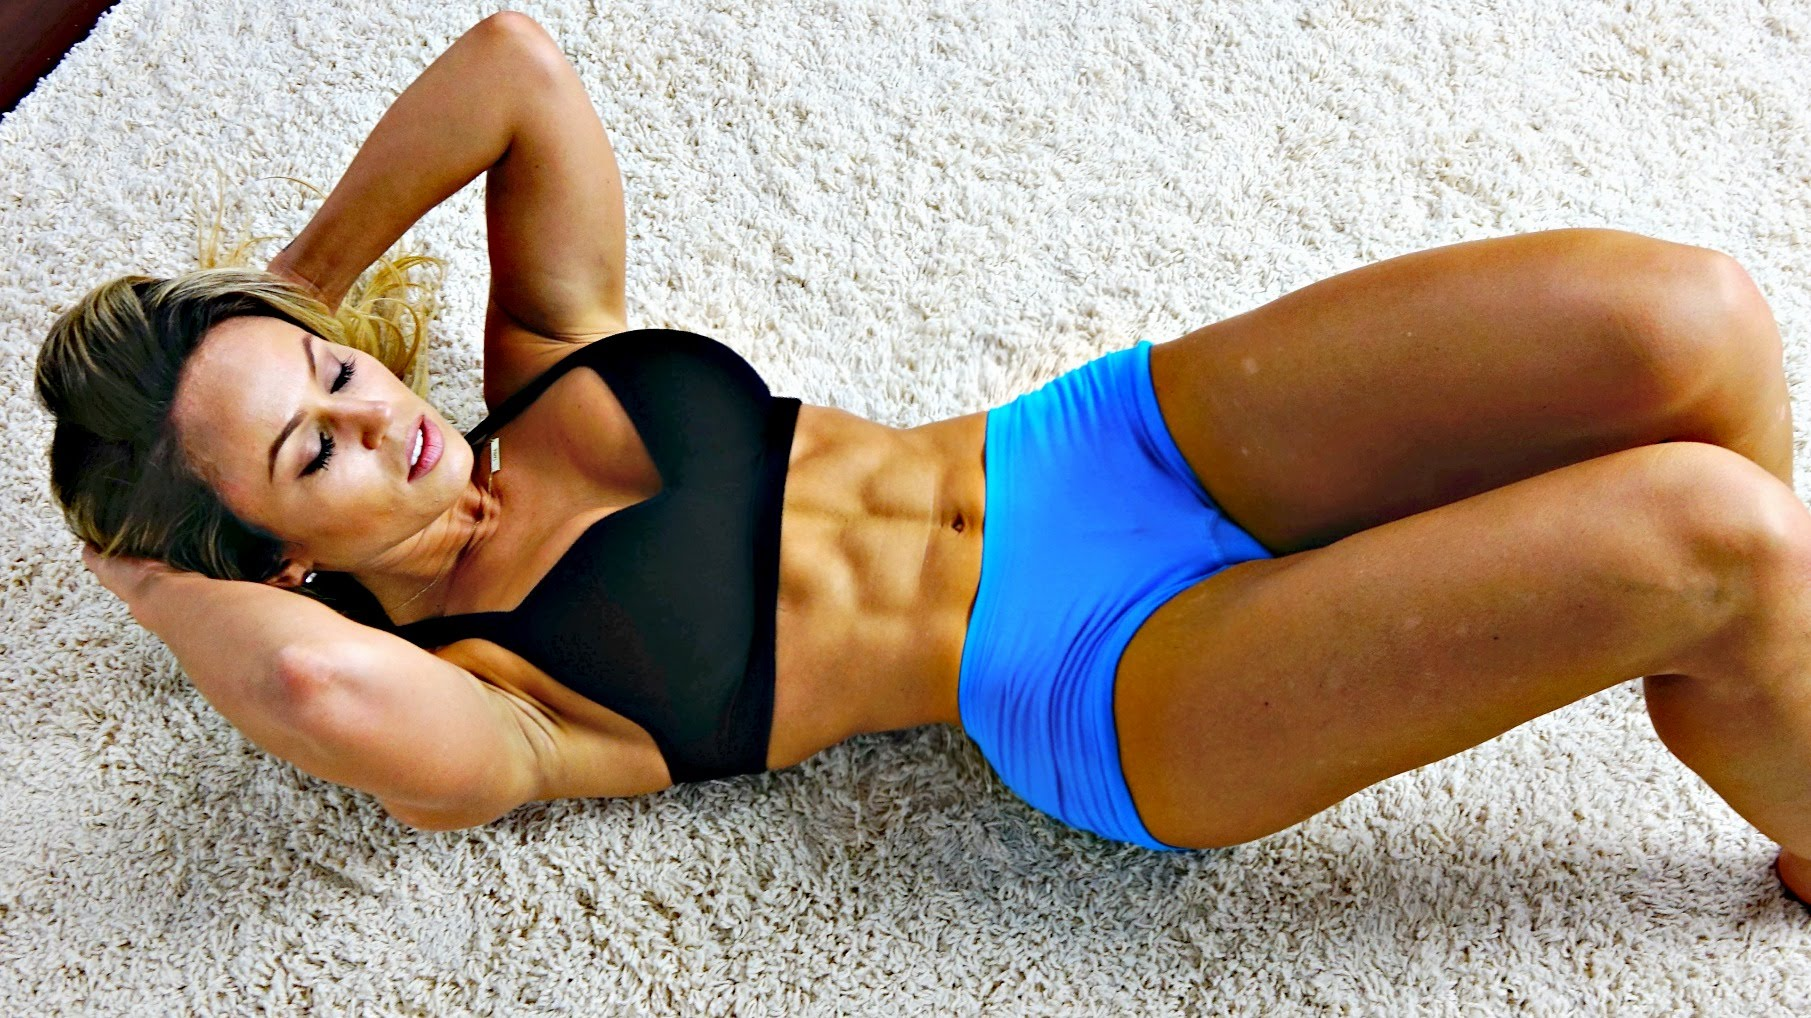 Always go for abs-specific work out